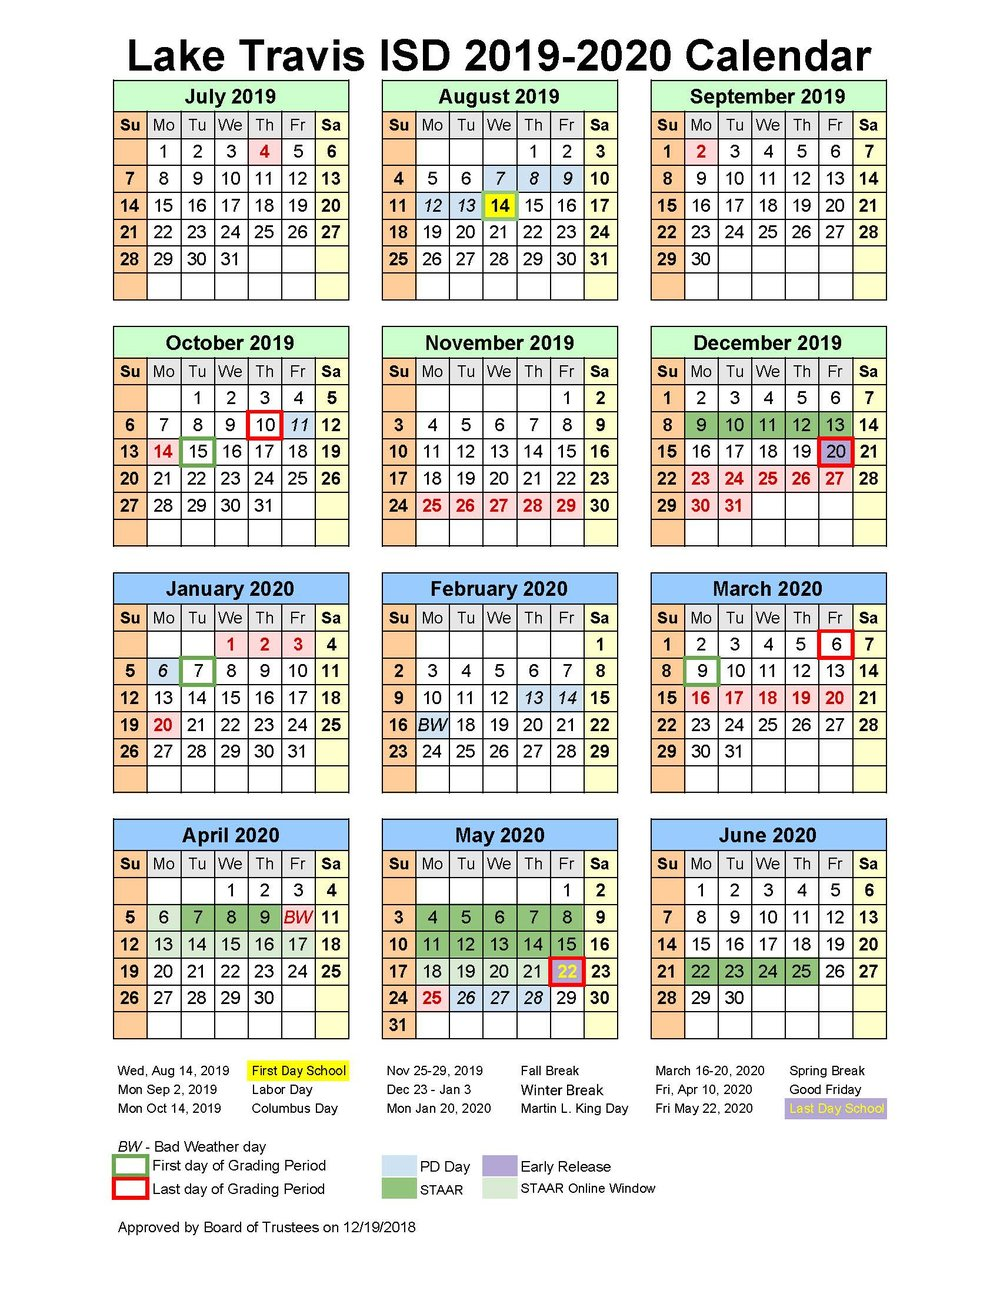 Approved 2019-2020 LTISD Instructional Calendar - Approved Simple Version.jpg